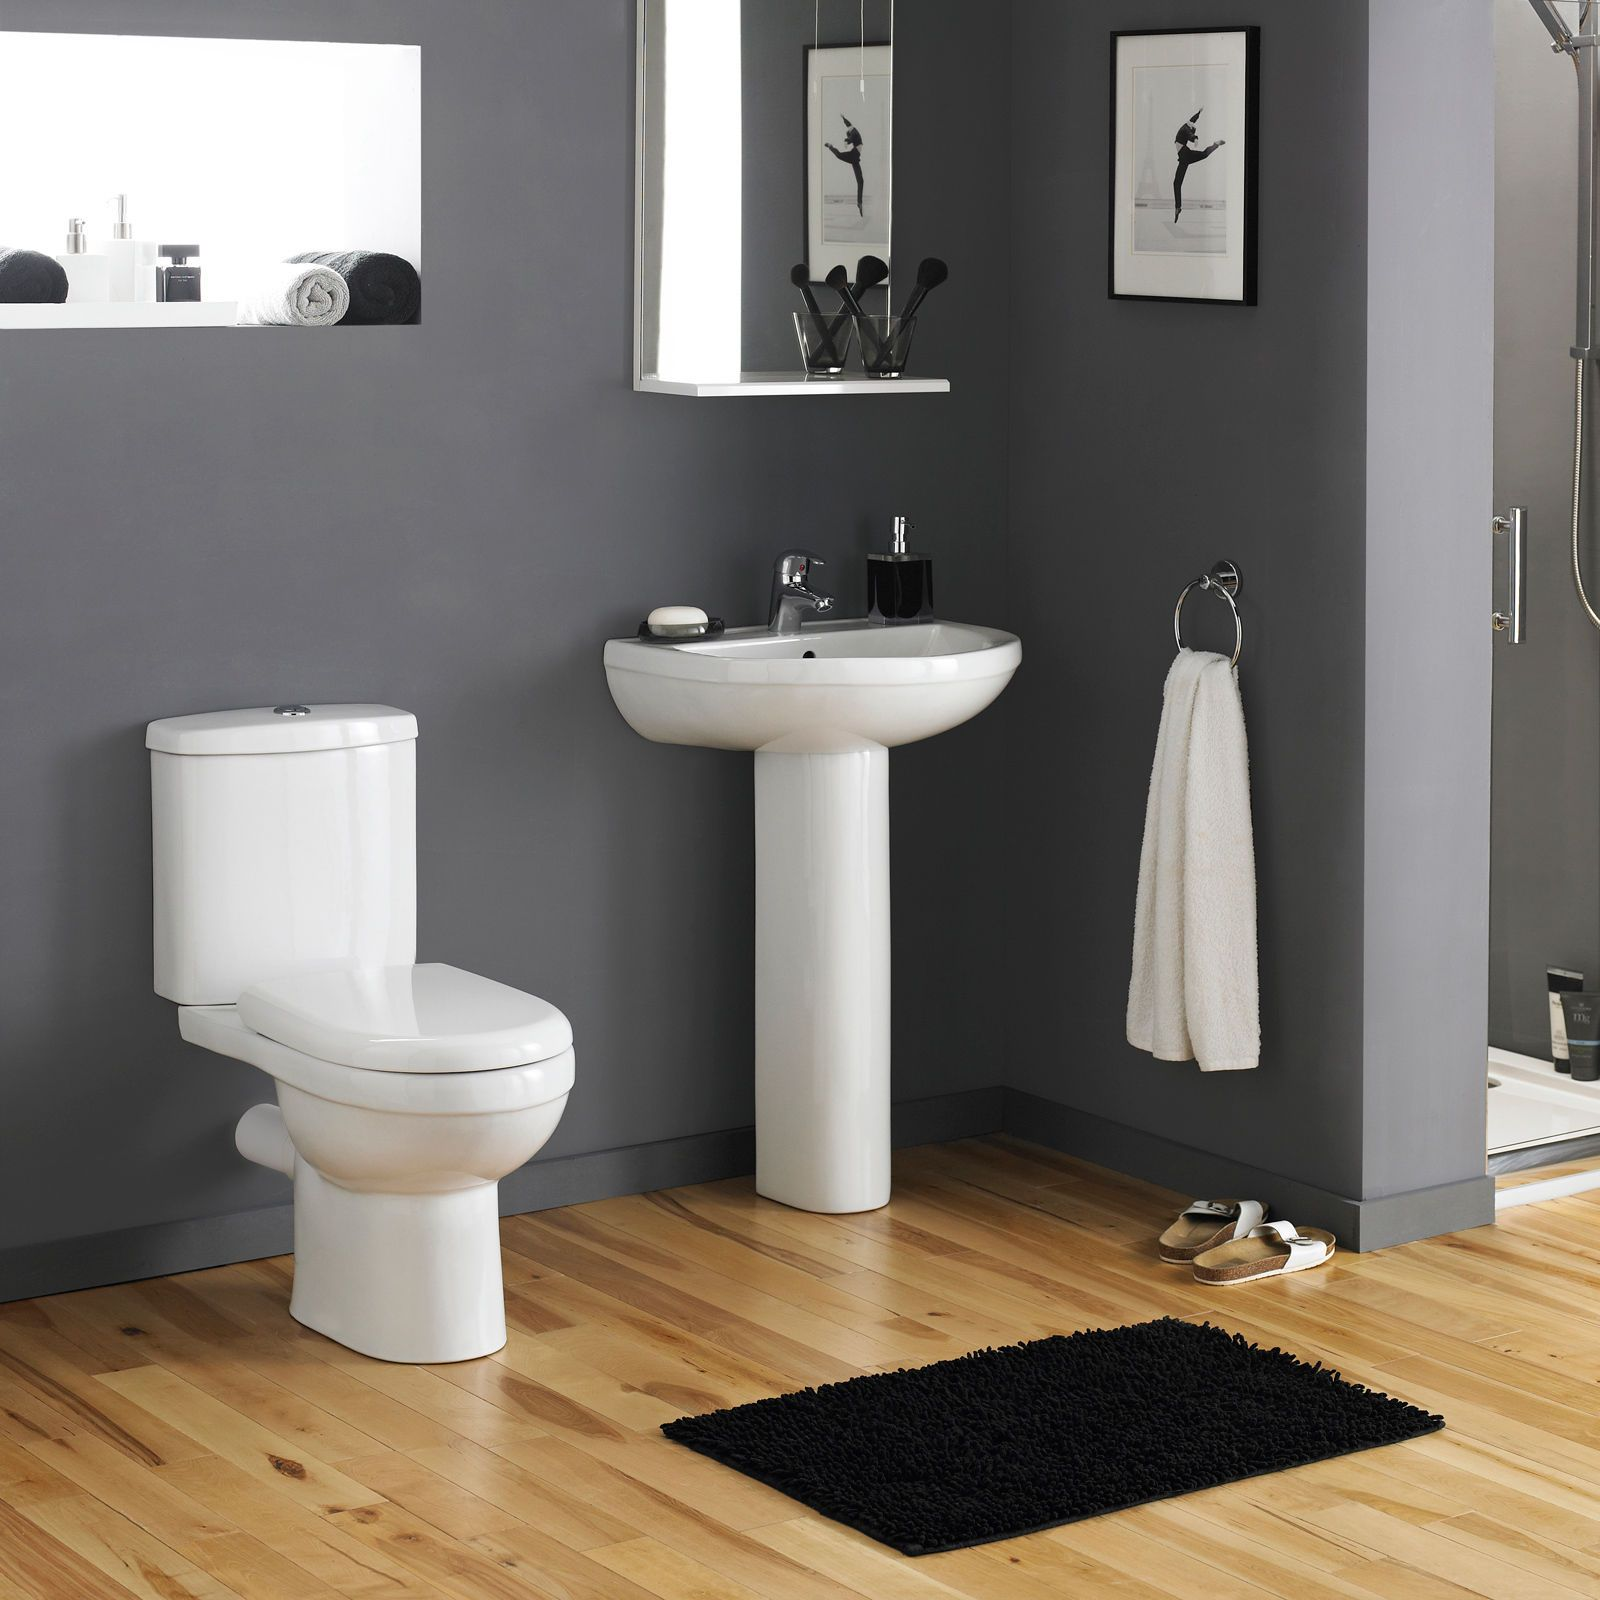 Standard toilet seat dimensions  Details about Bathroom WC Toilet Cistern Basin Sink and pedestal